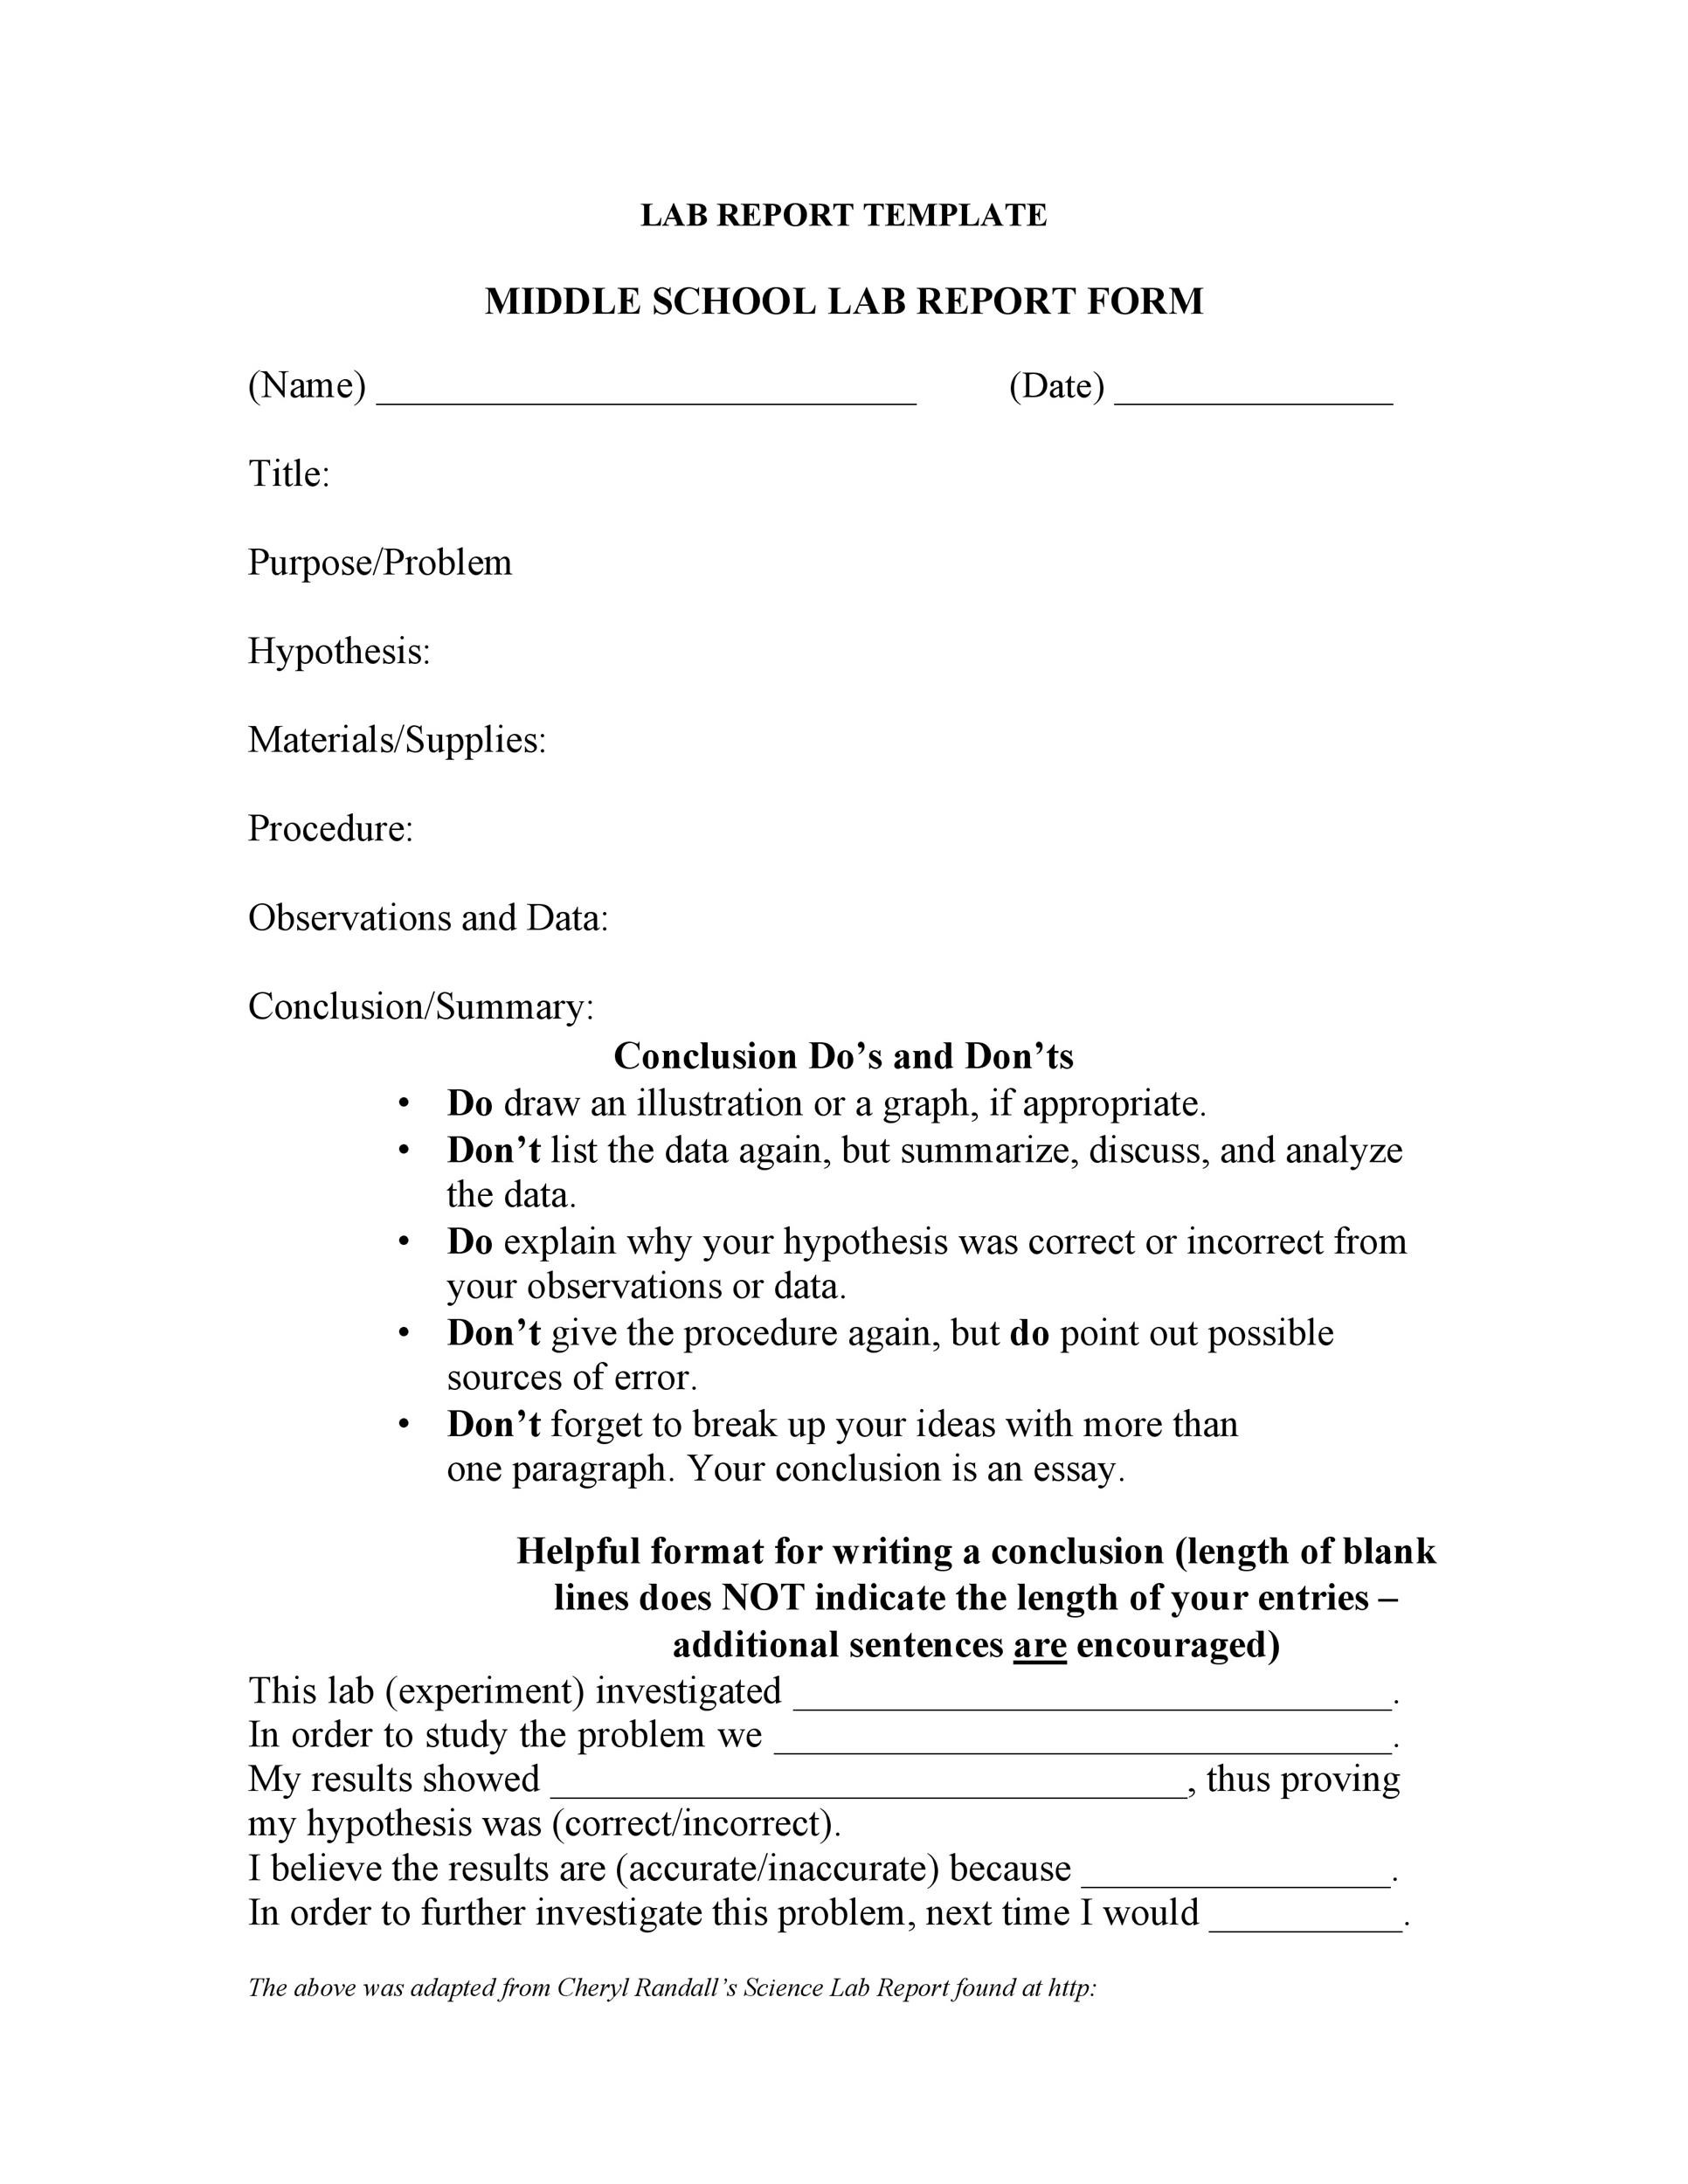 40 Lab Report Templates & Format Examples ᐅ Template Lab